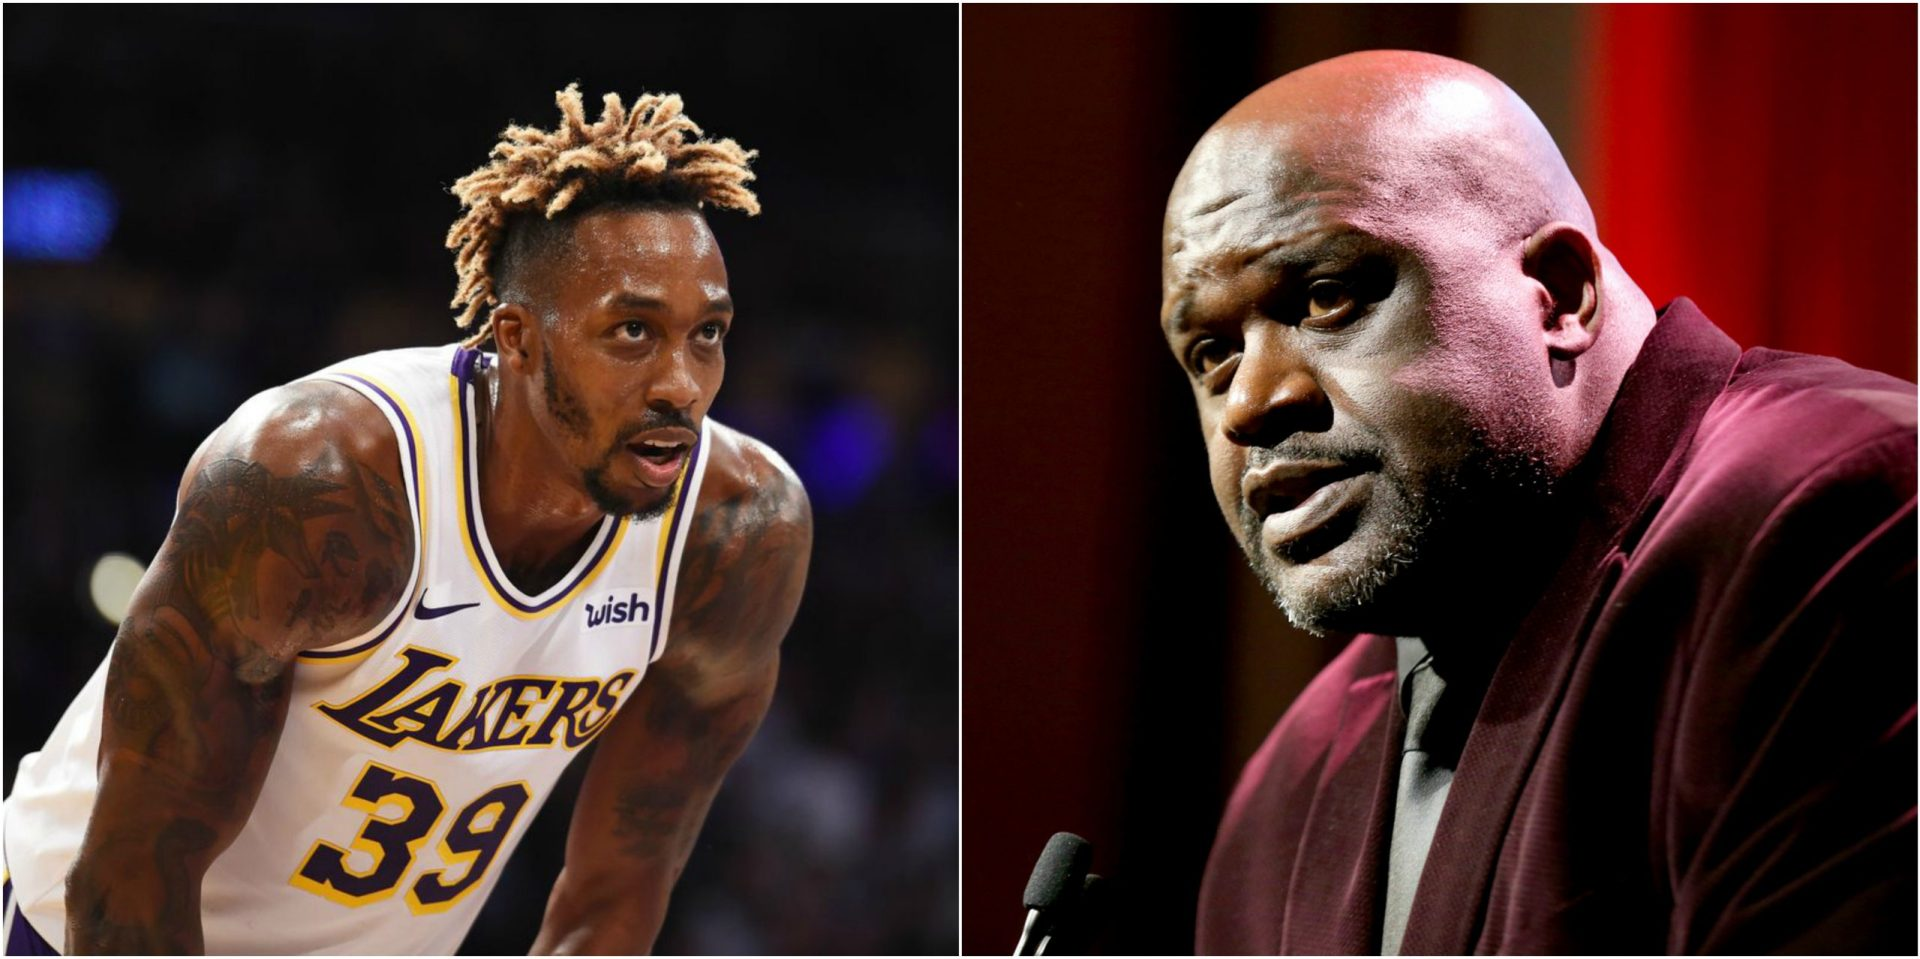 Dwight Howard responds to Shaq following criticism - THE SPORTS ROOM